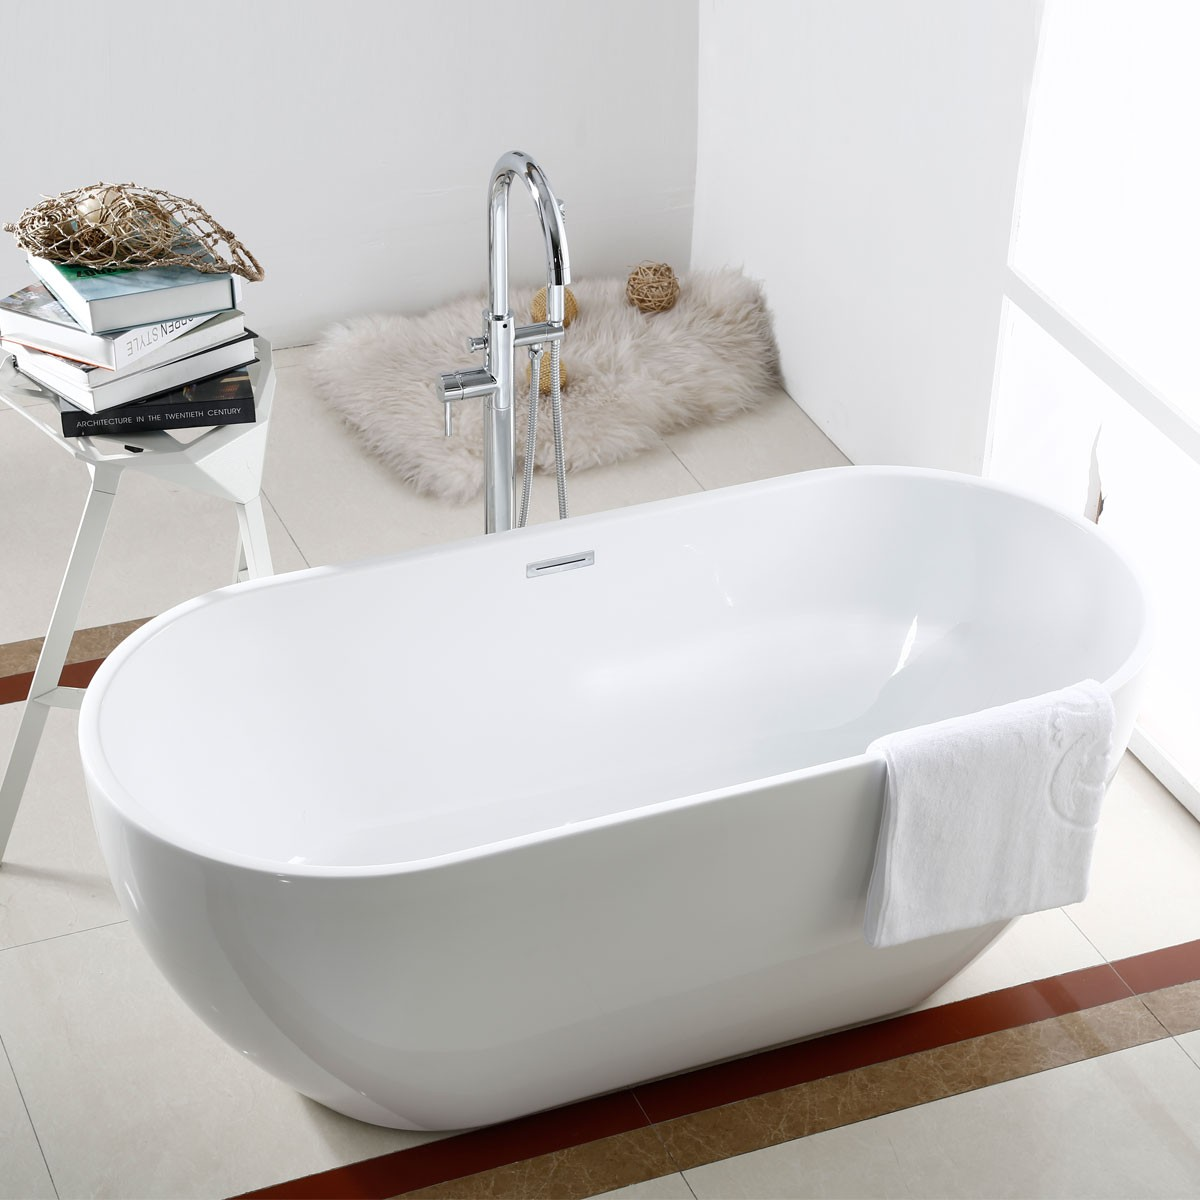 65 In Pure White Acrylic Seamless Freestanding Bathtub (DK-PW-11672)